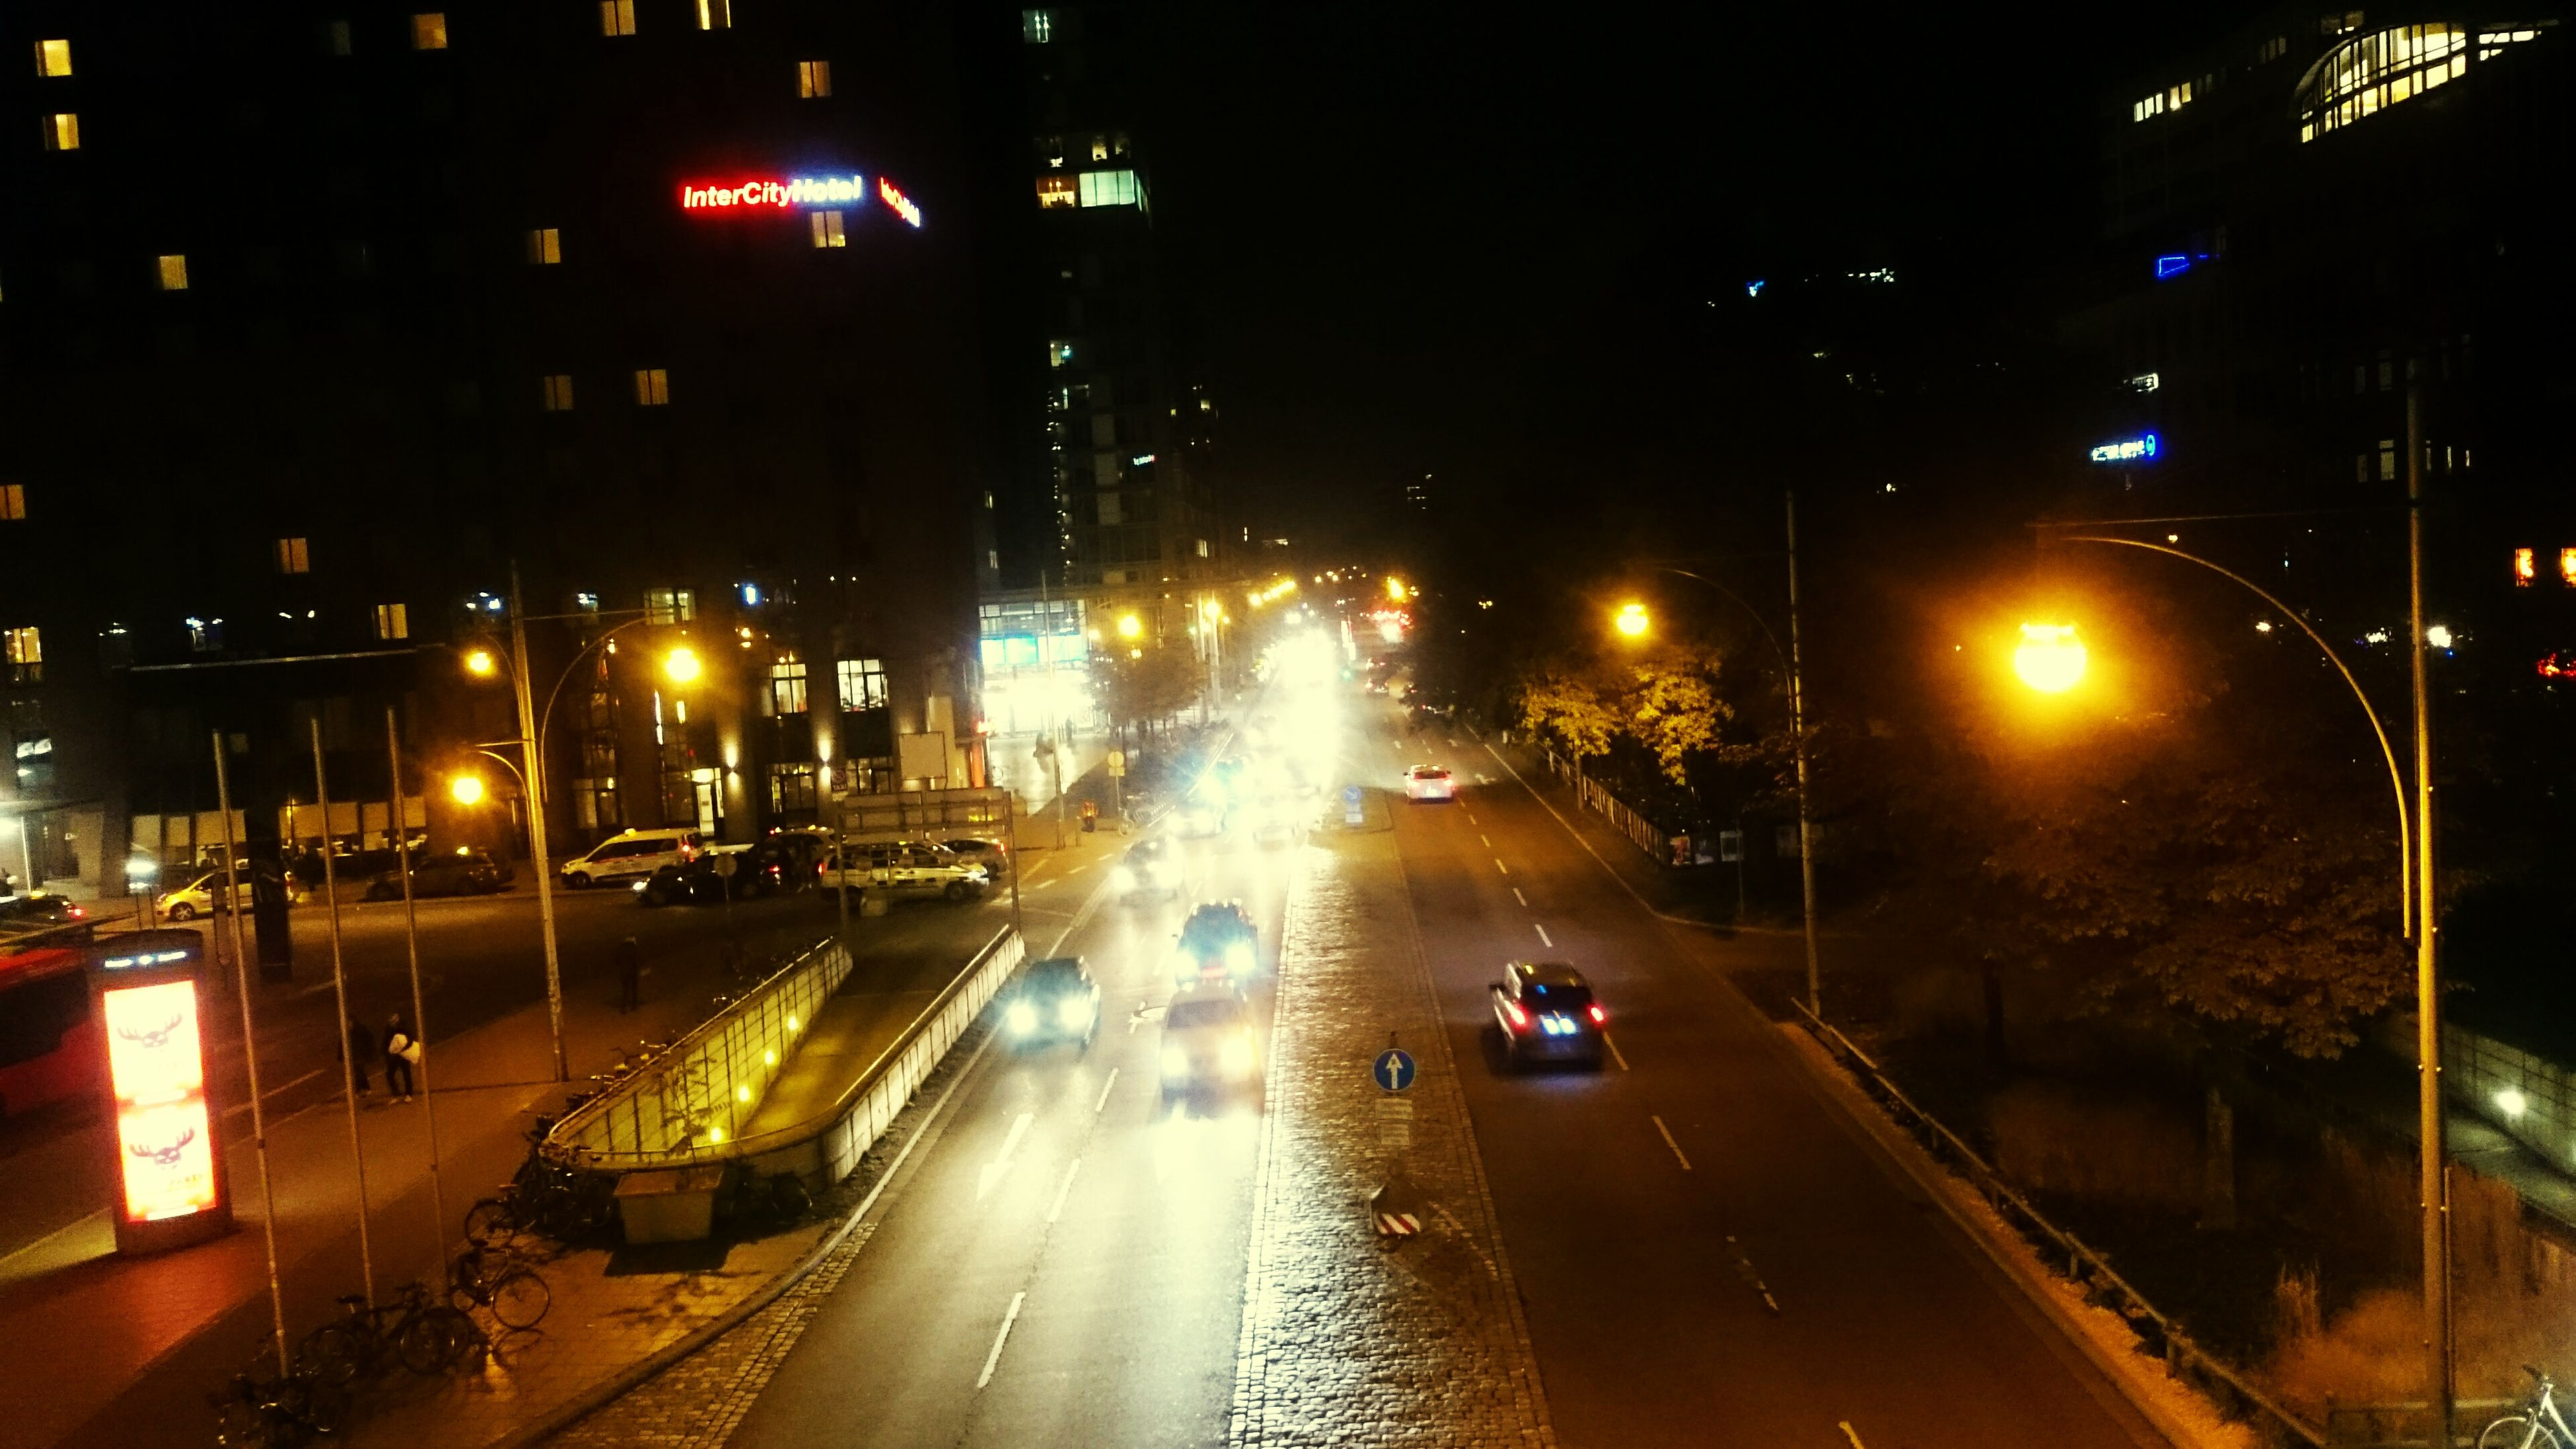 transportation, illuminated, night, car, city, mode of transport, land vehicle, building exterior, street, street light, traffic, architecture, built structure, road, city street, city life, on the move, high angle view, the way forward, wet